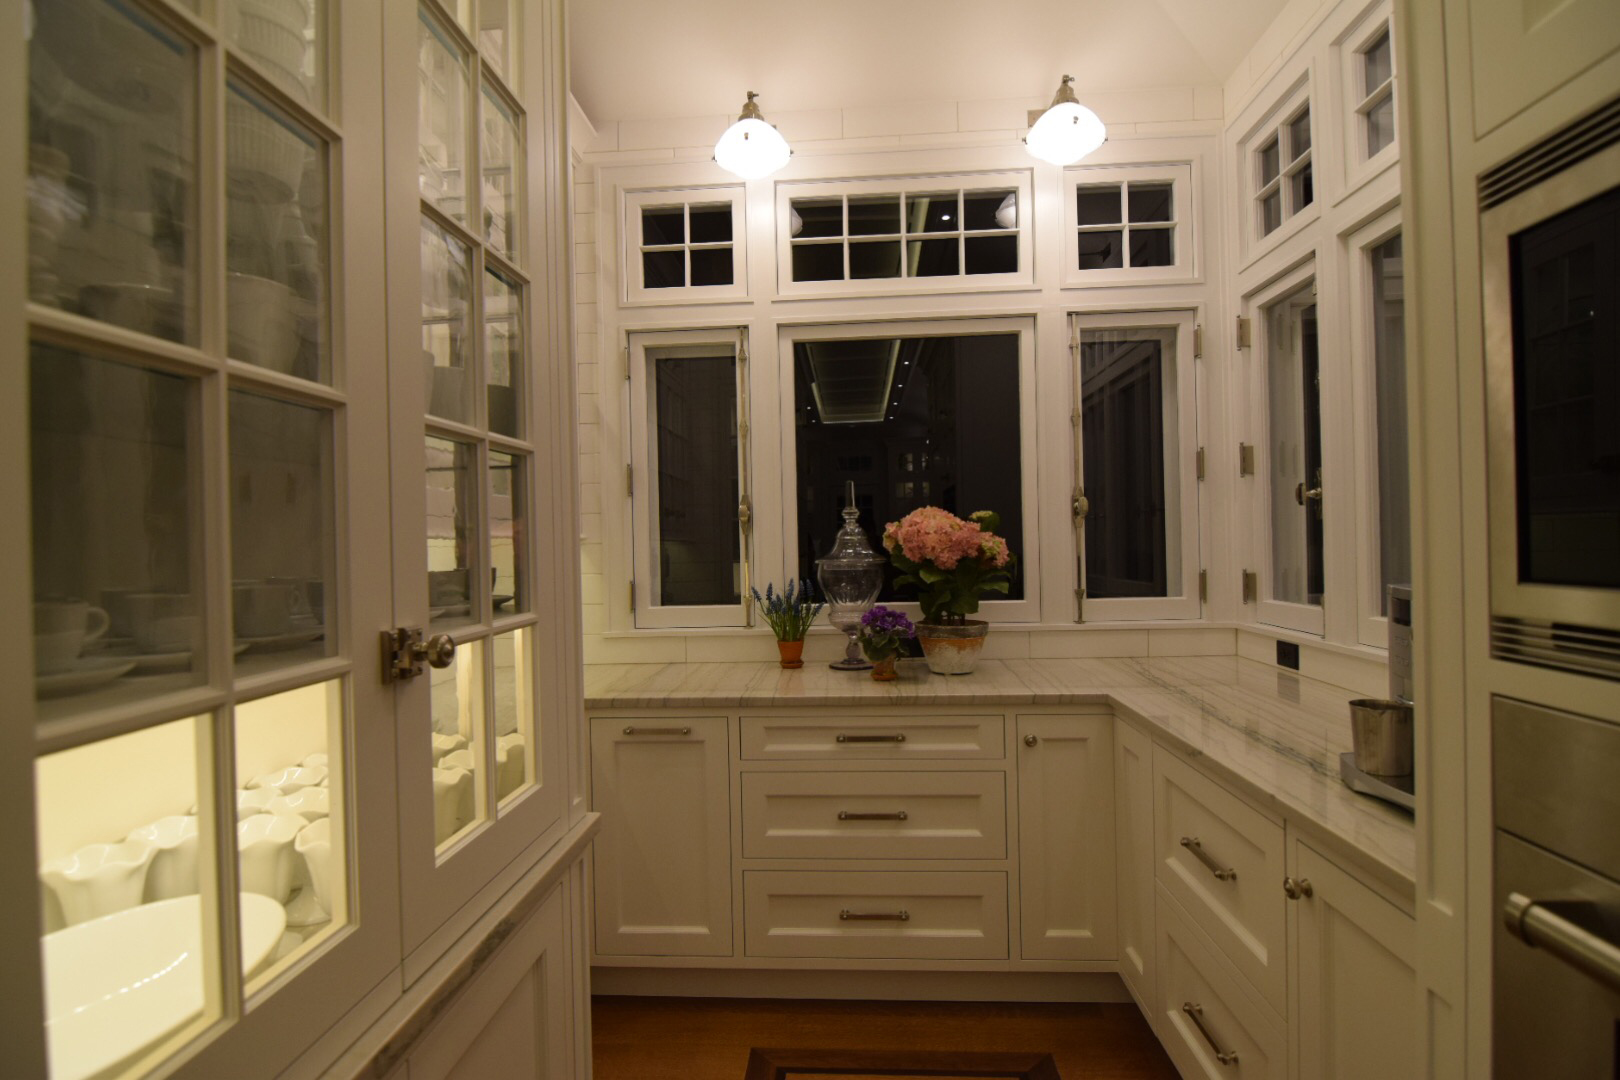 custom-traditional-kitchen-face-frame-with-inset-cabinet-doors-and-custom-windows-and-transoms.jpg